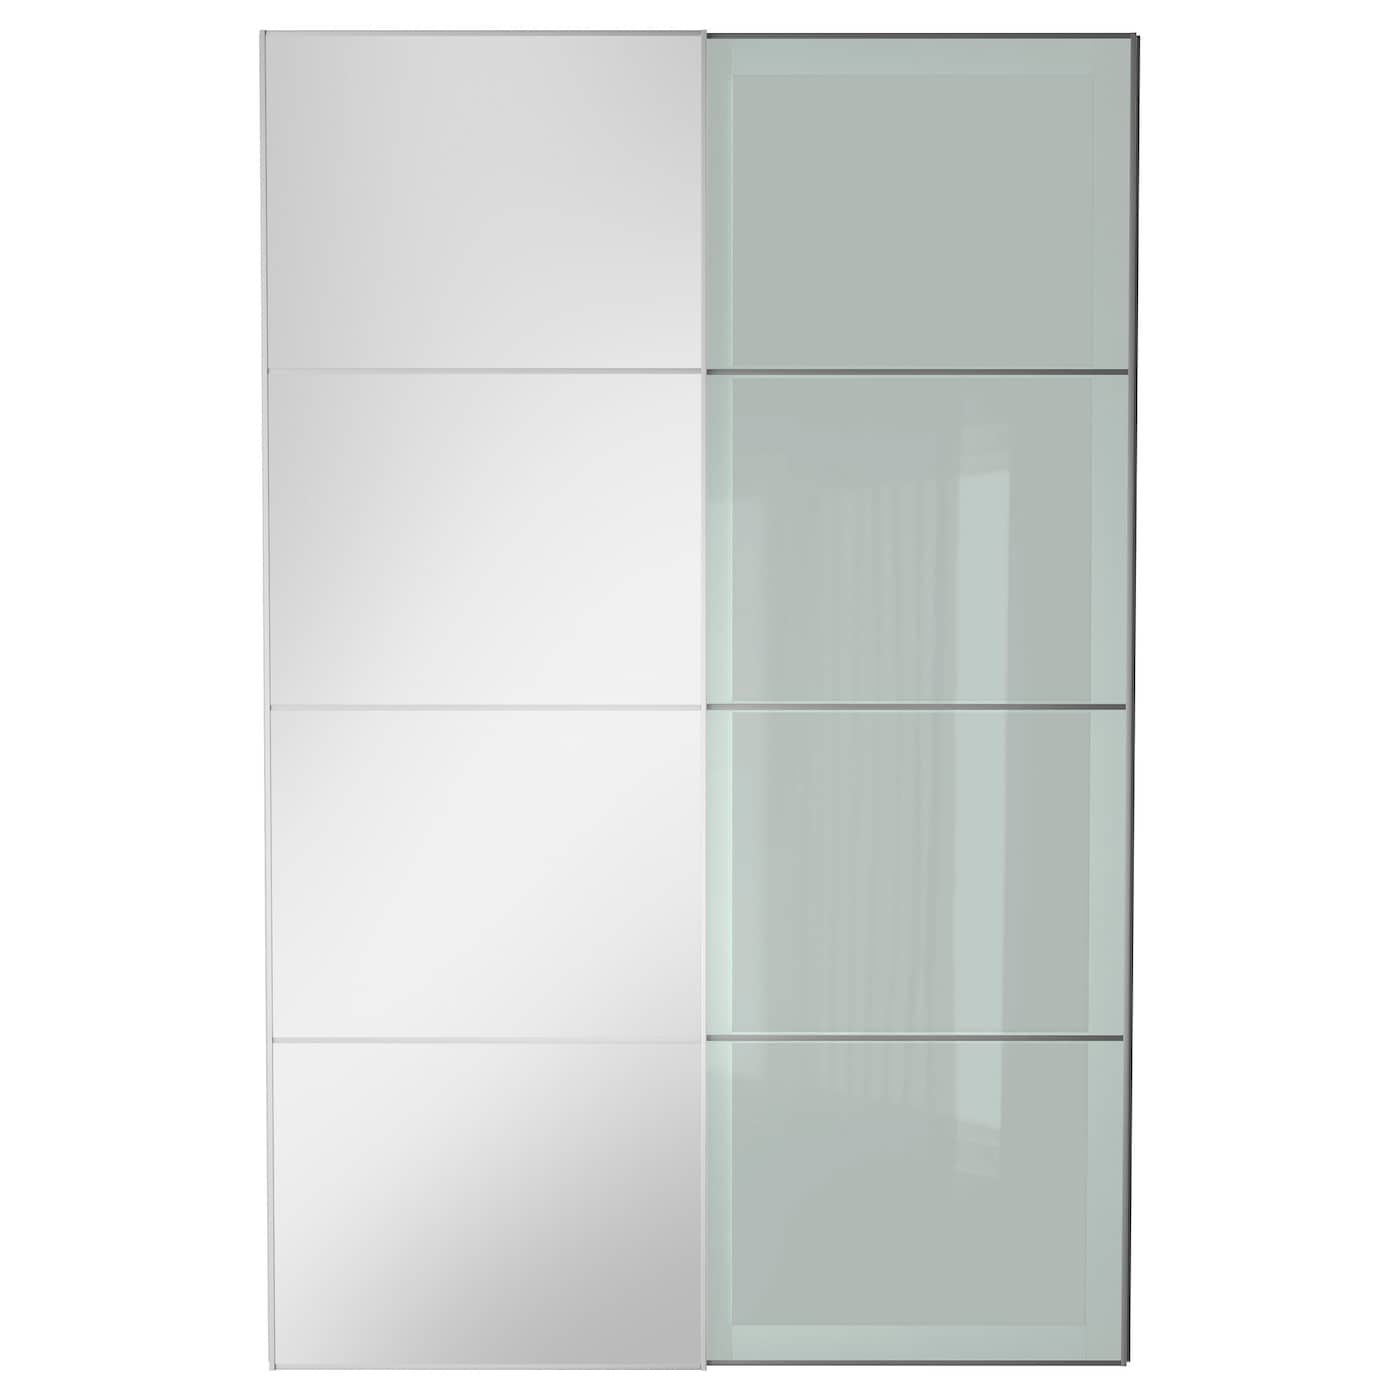 auli sekken pair of sliding doors mirror glass frosted glass 150 x 236 cm ikea. Black Bedroom Furniture Sets. Home Design Ideas